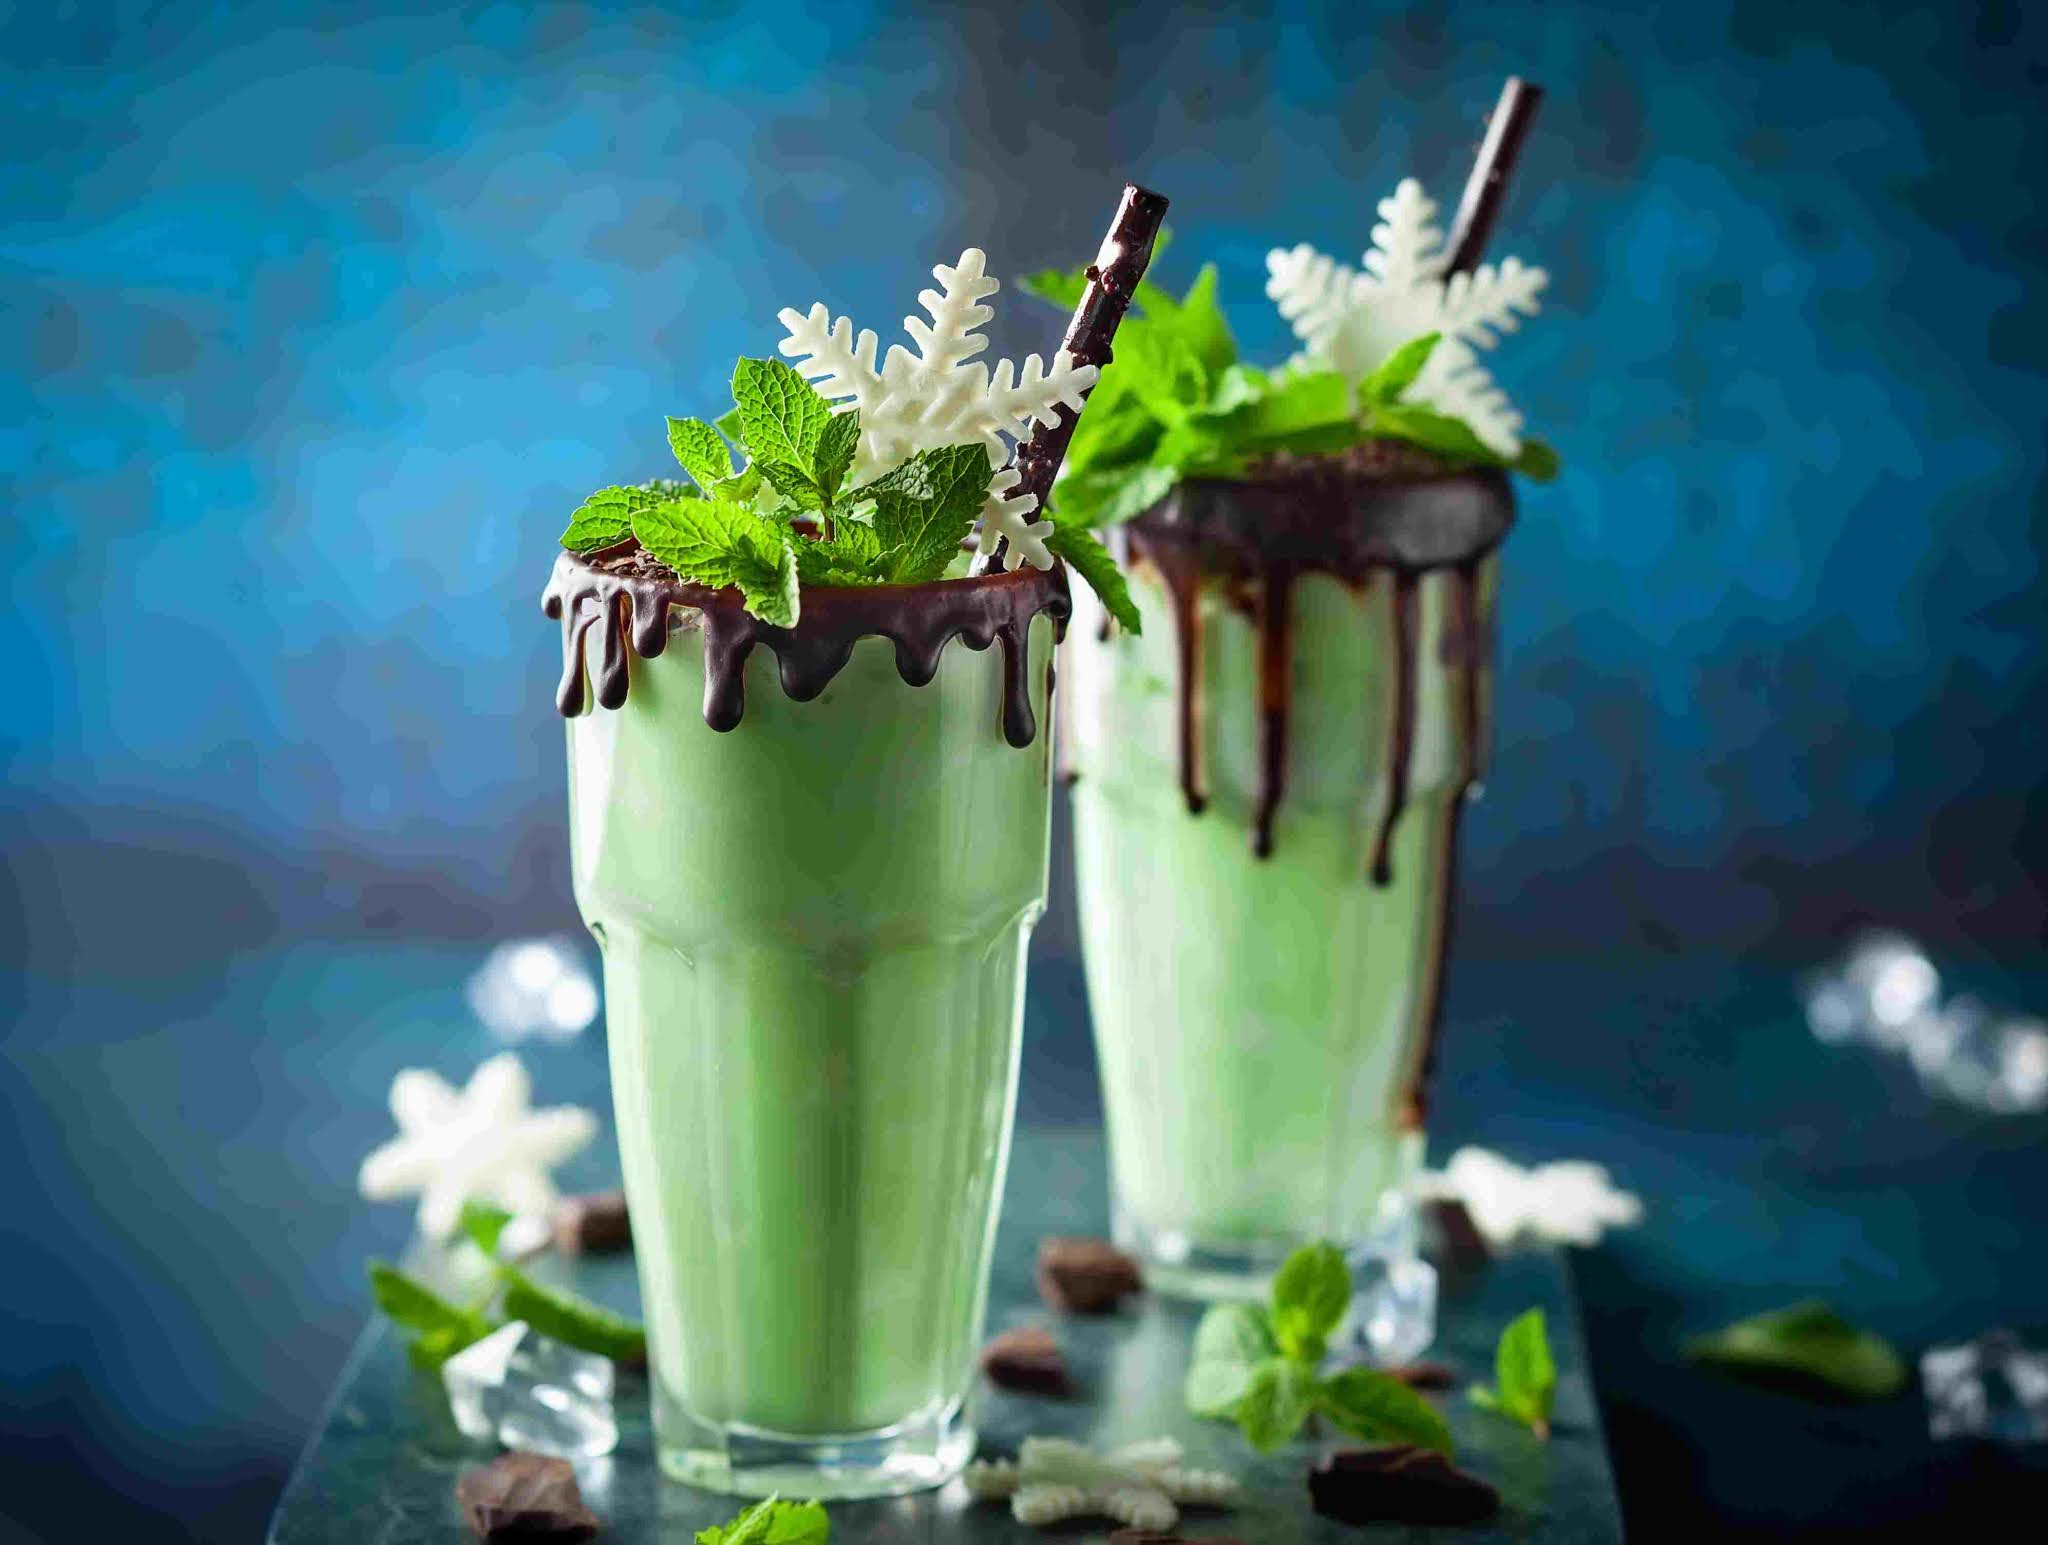 beverage captions, chocolate flavour shake captions, saying and quotes on beverages